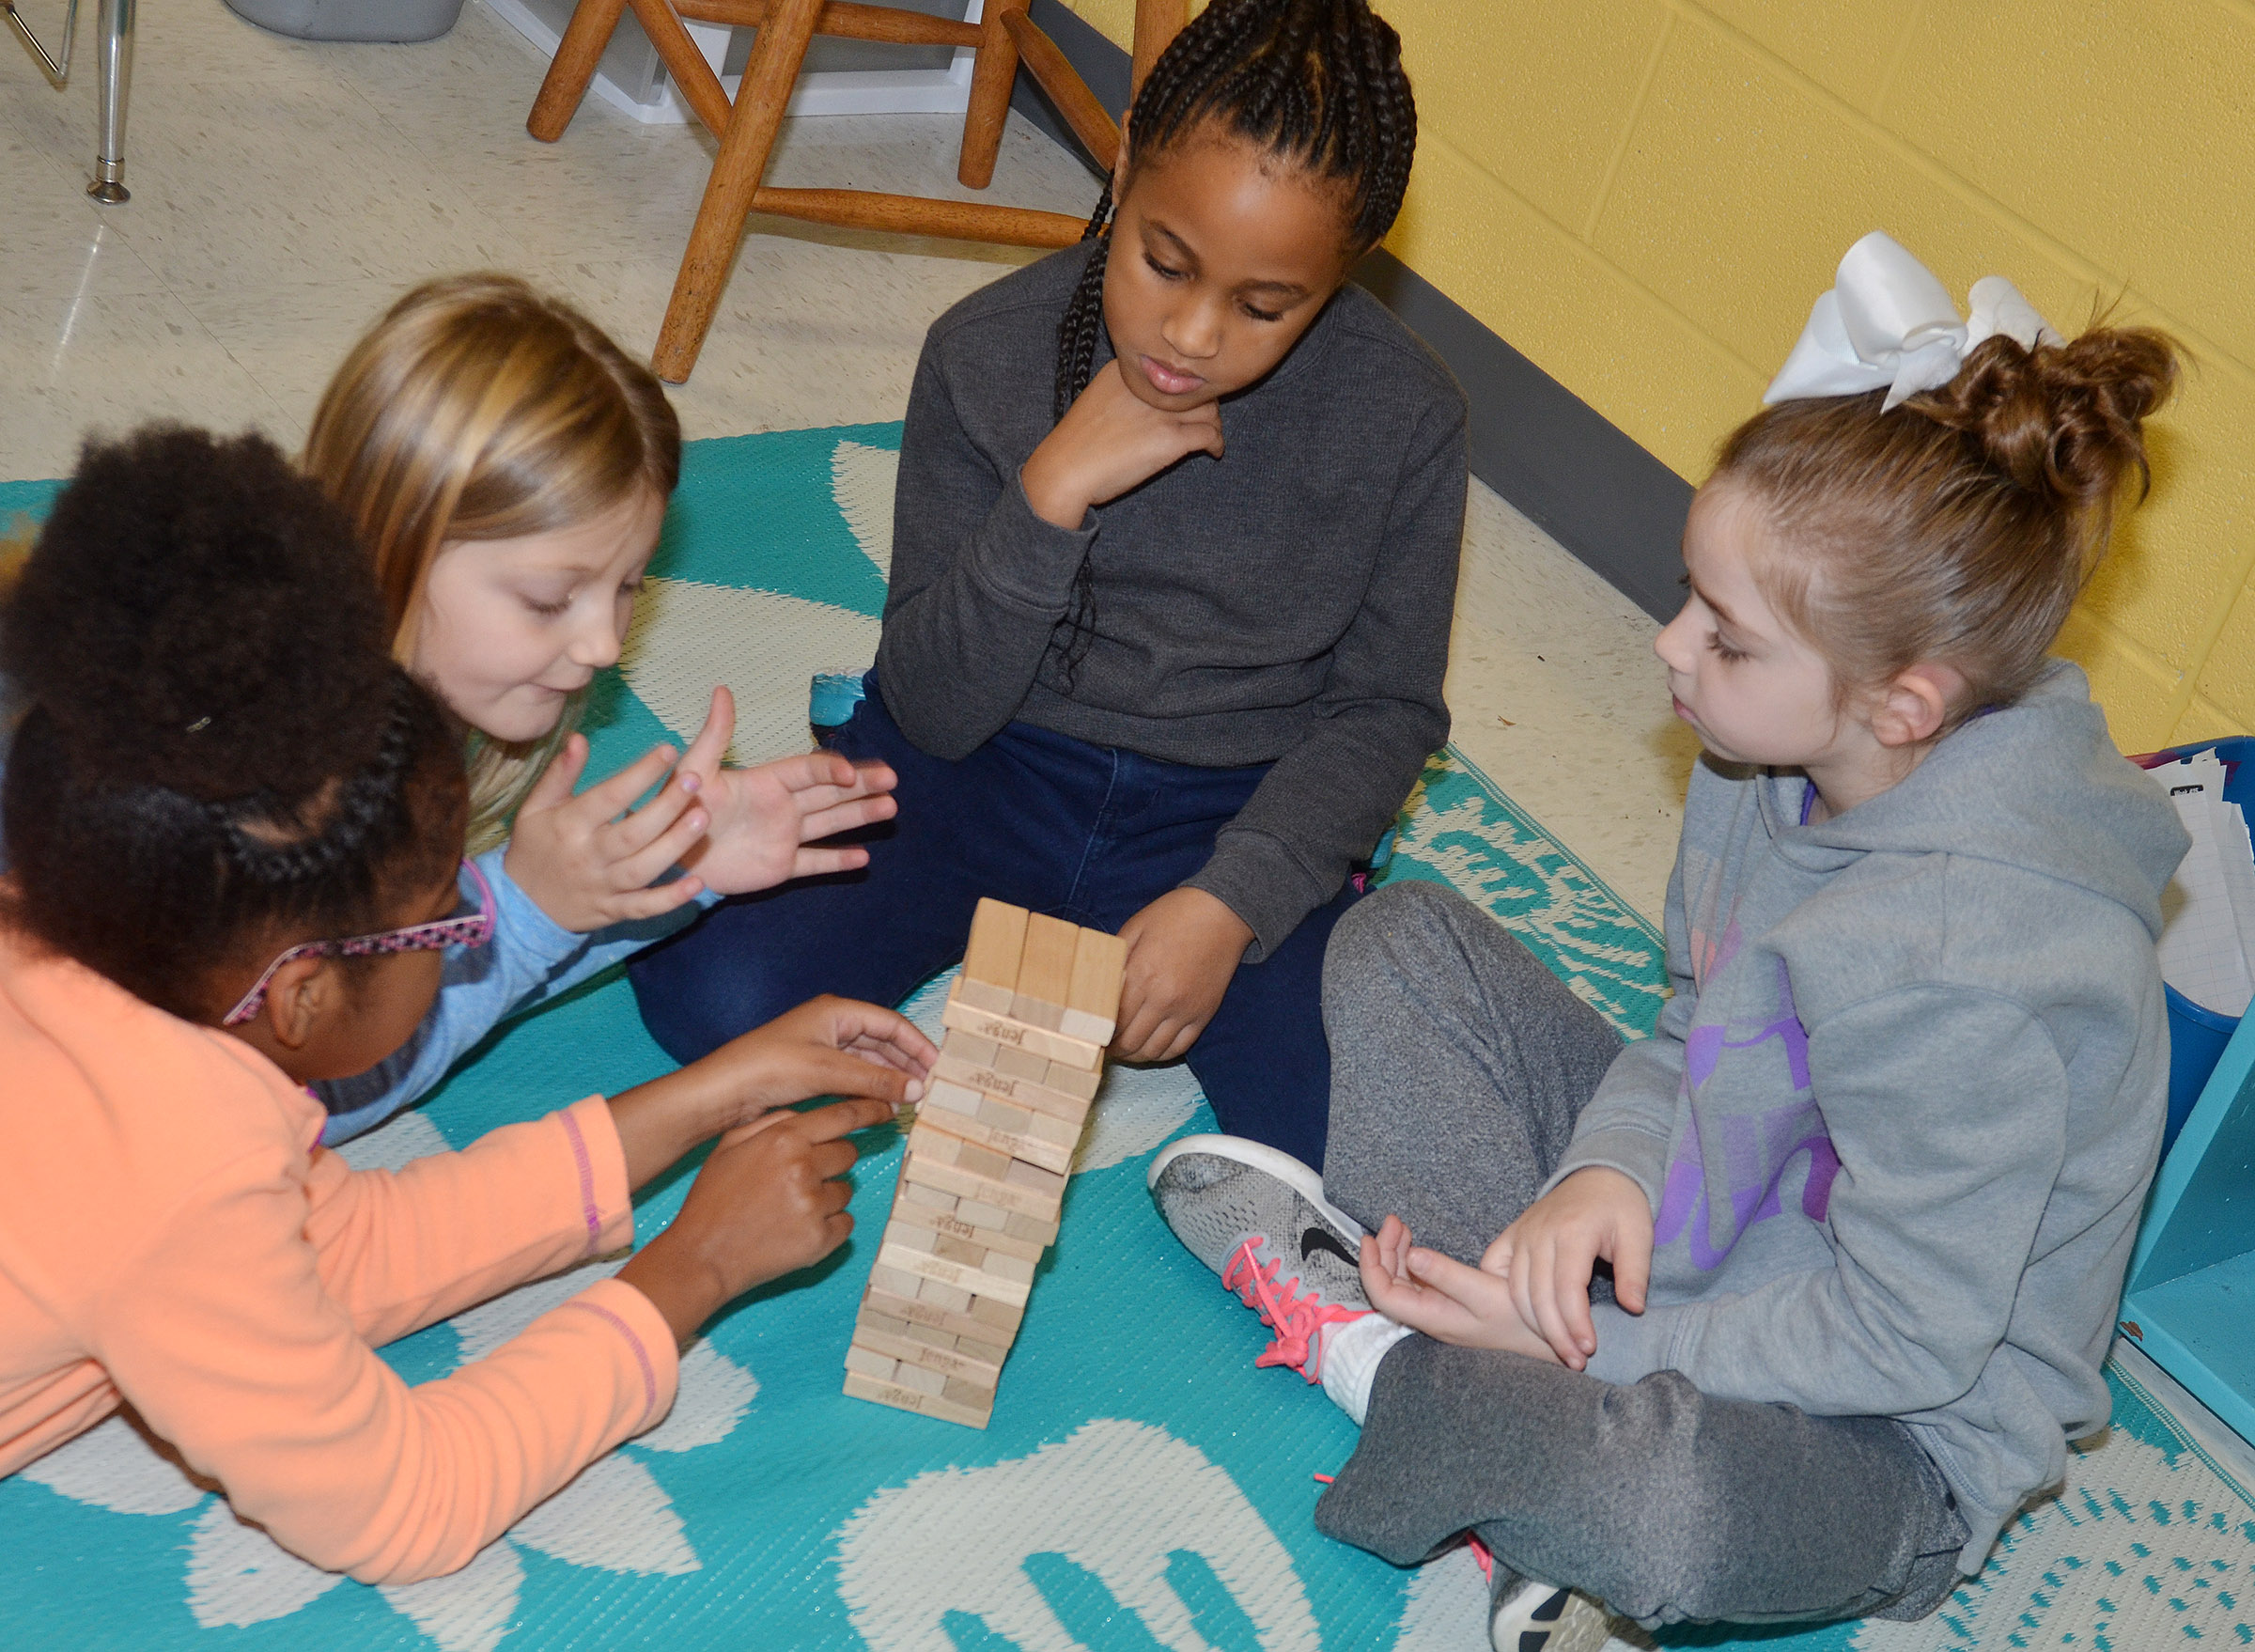 CES second-graders, from left, Willow Griffin, Asia Singleton, Kadance Ford and Lainey Price play Jenga.